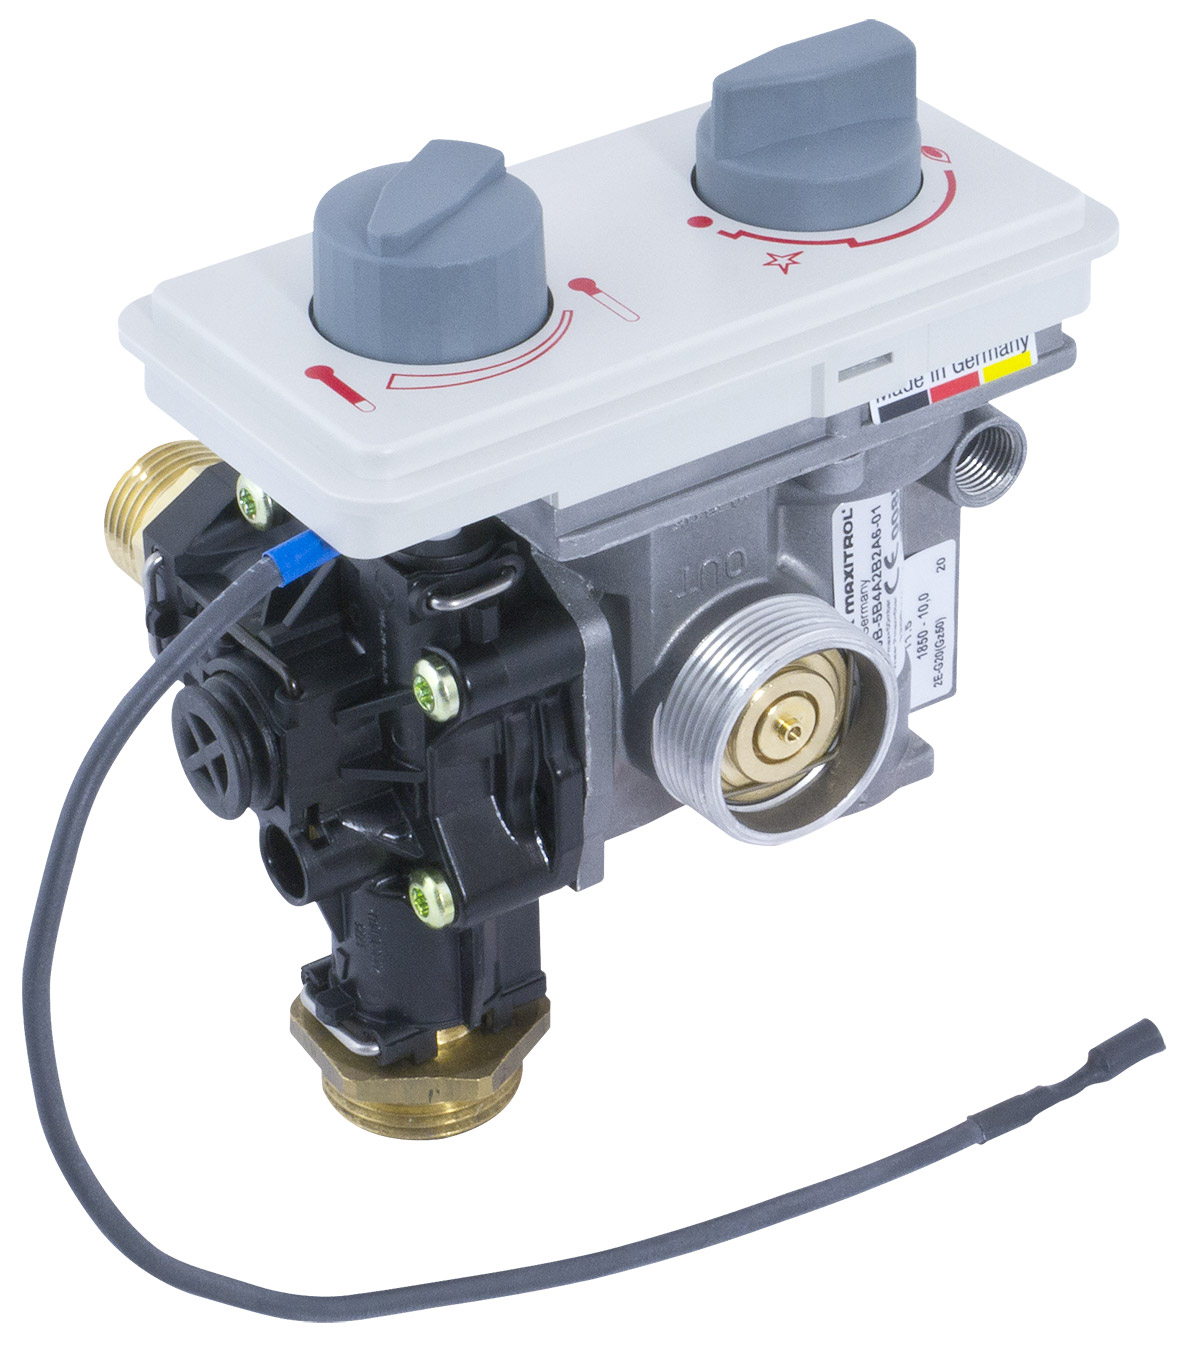 GW40B Gas-Water Combination Control